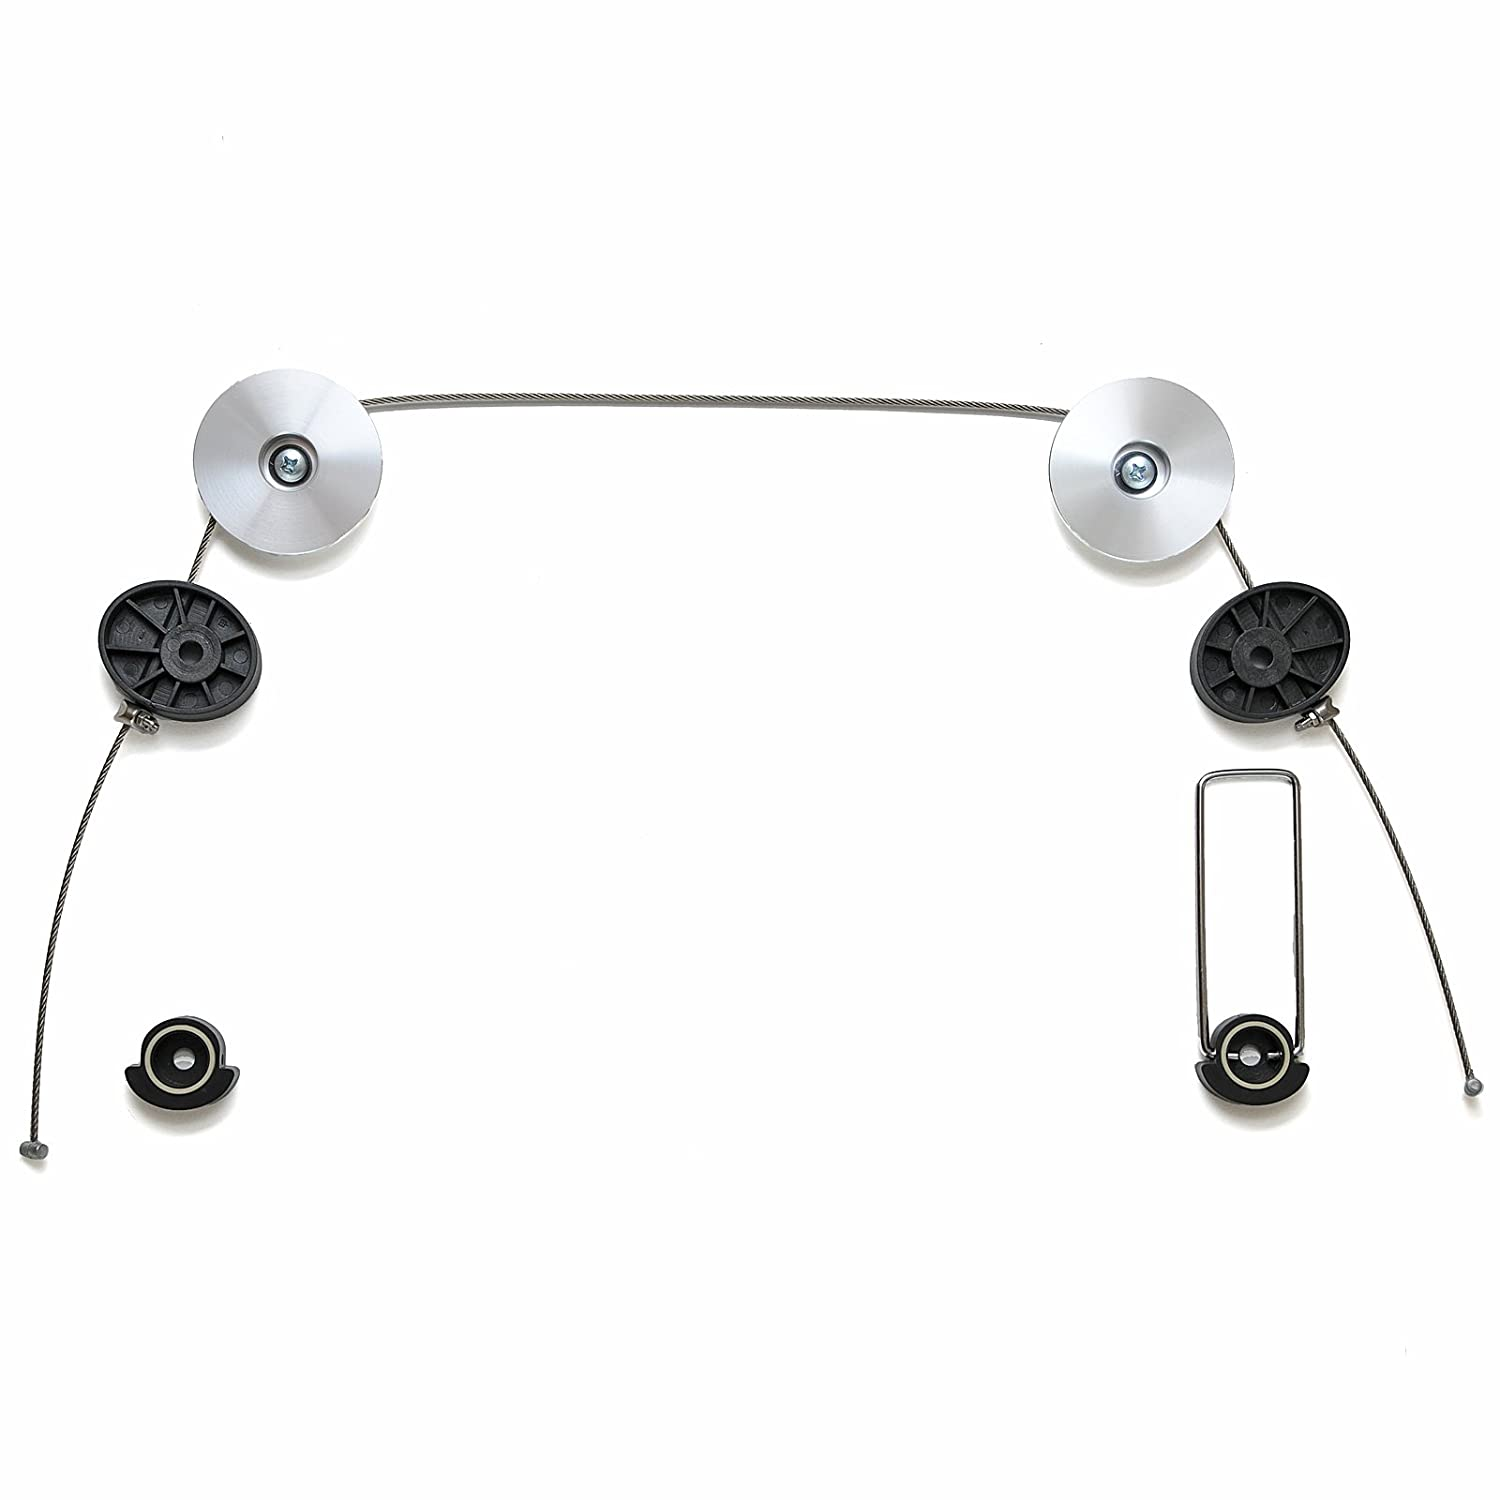 Cable Mountain Super Slim LED TV Wire Wall Mounting: Amazon.co.uk ...